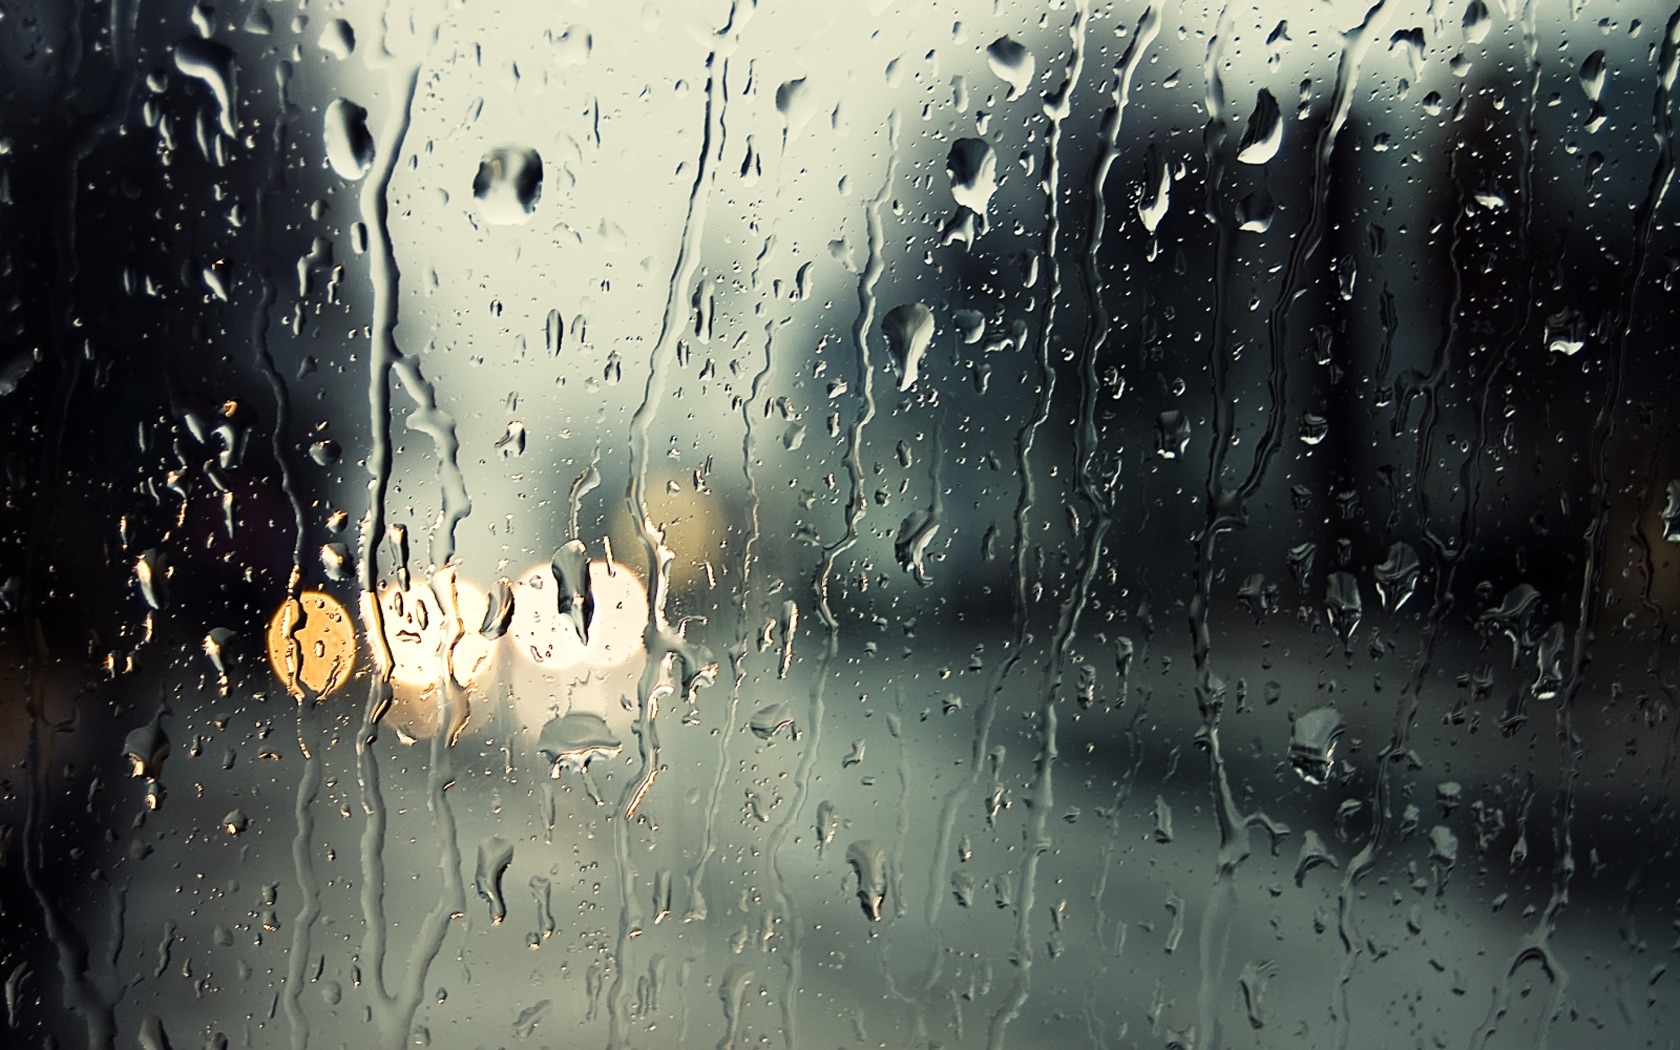 Rain Mode On: What If It Never Stopped Raining? (VIDEO)